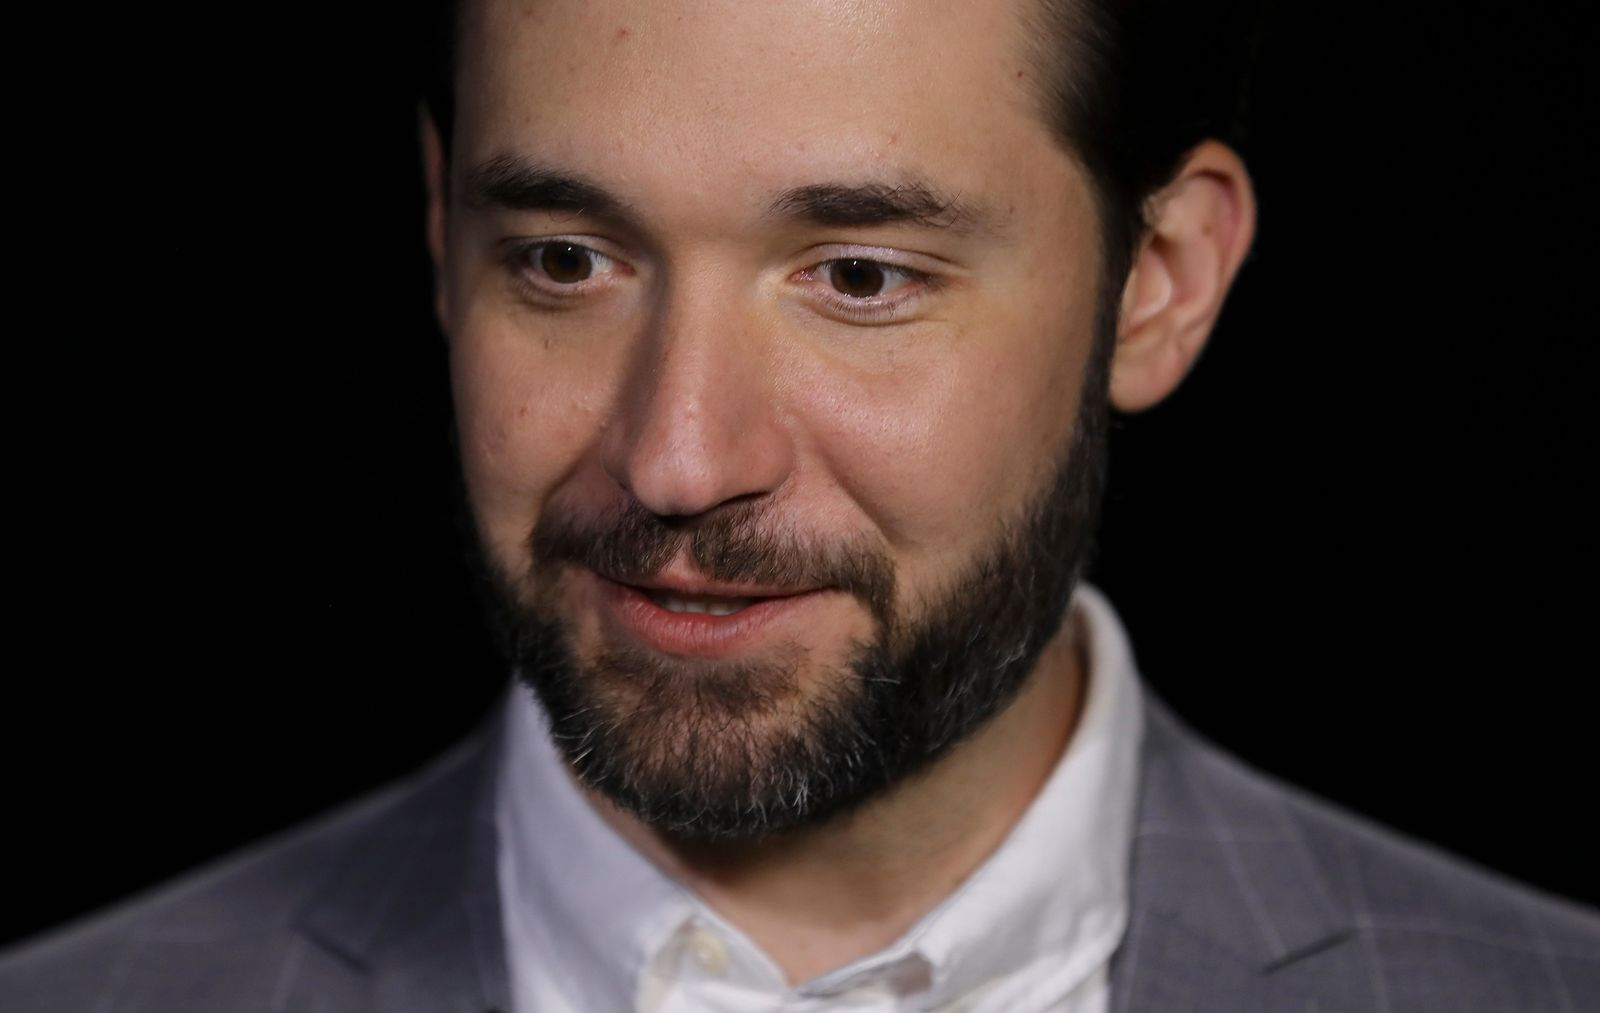 In this Tuesday Feb. 19, 2019, photo Alexis Ohanian, founder of the social media company Reddit, speaks during an interview in New York.{ } (AP Photo/Bebeto Matthews)